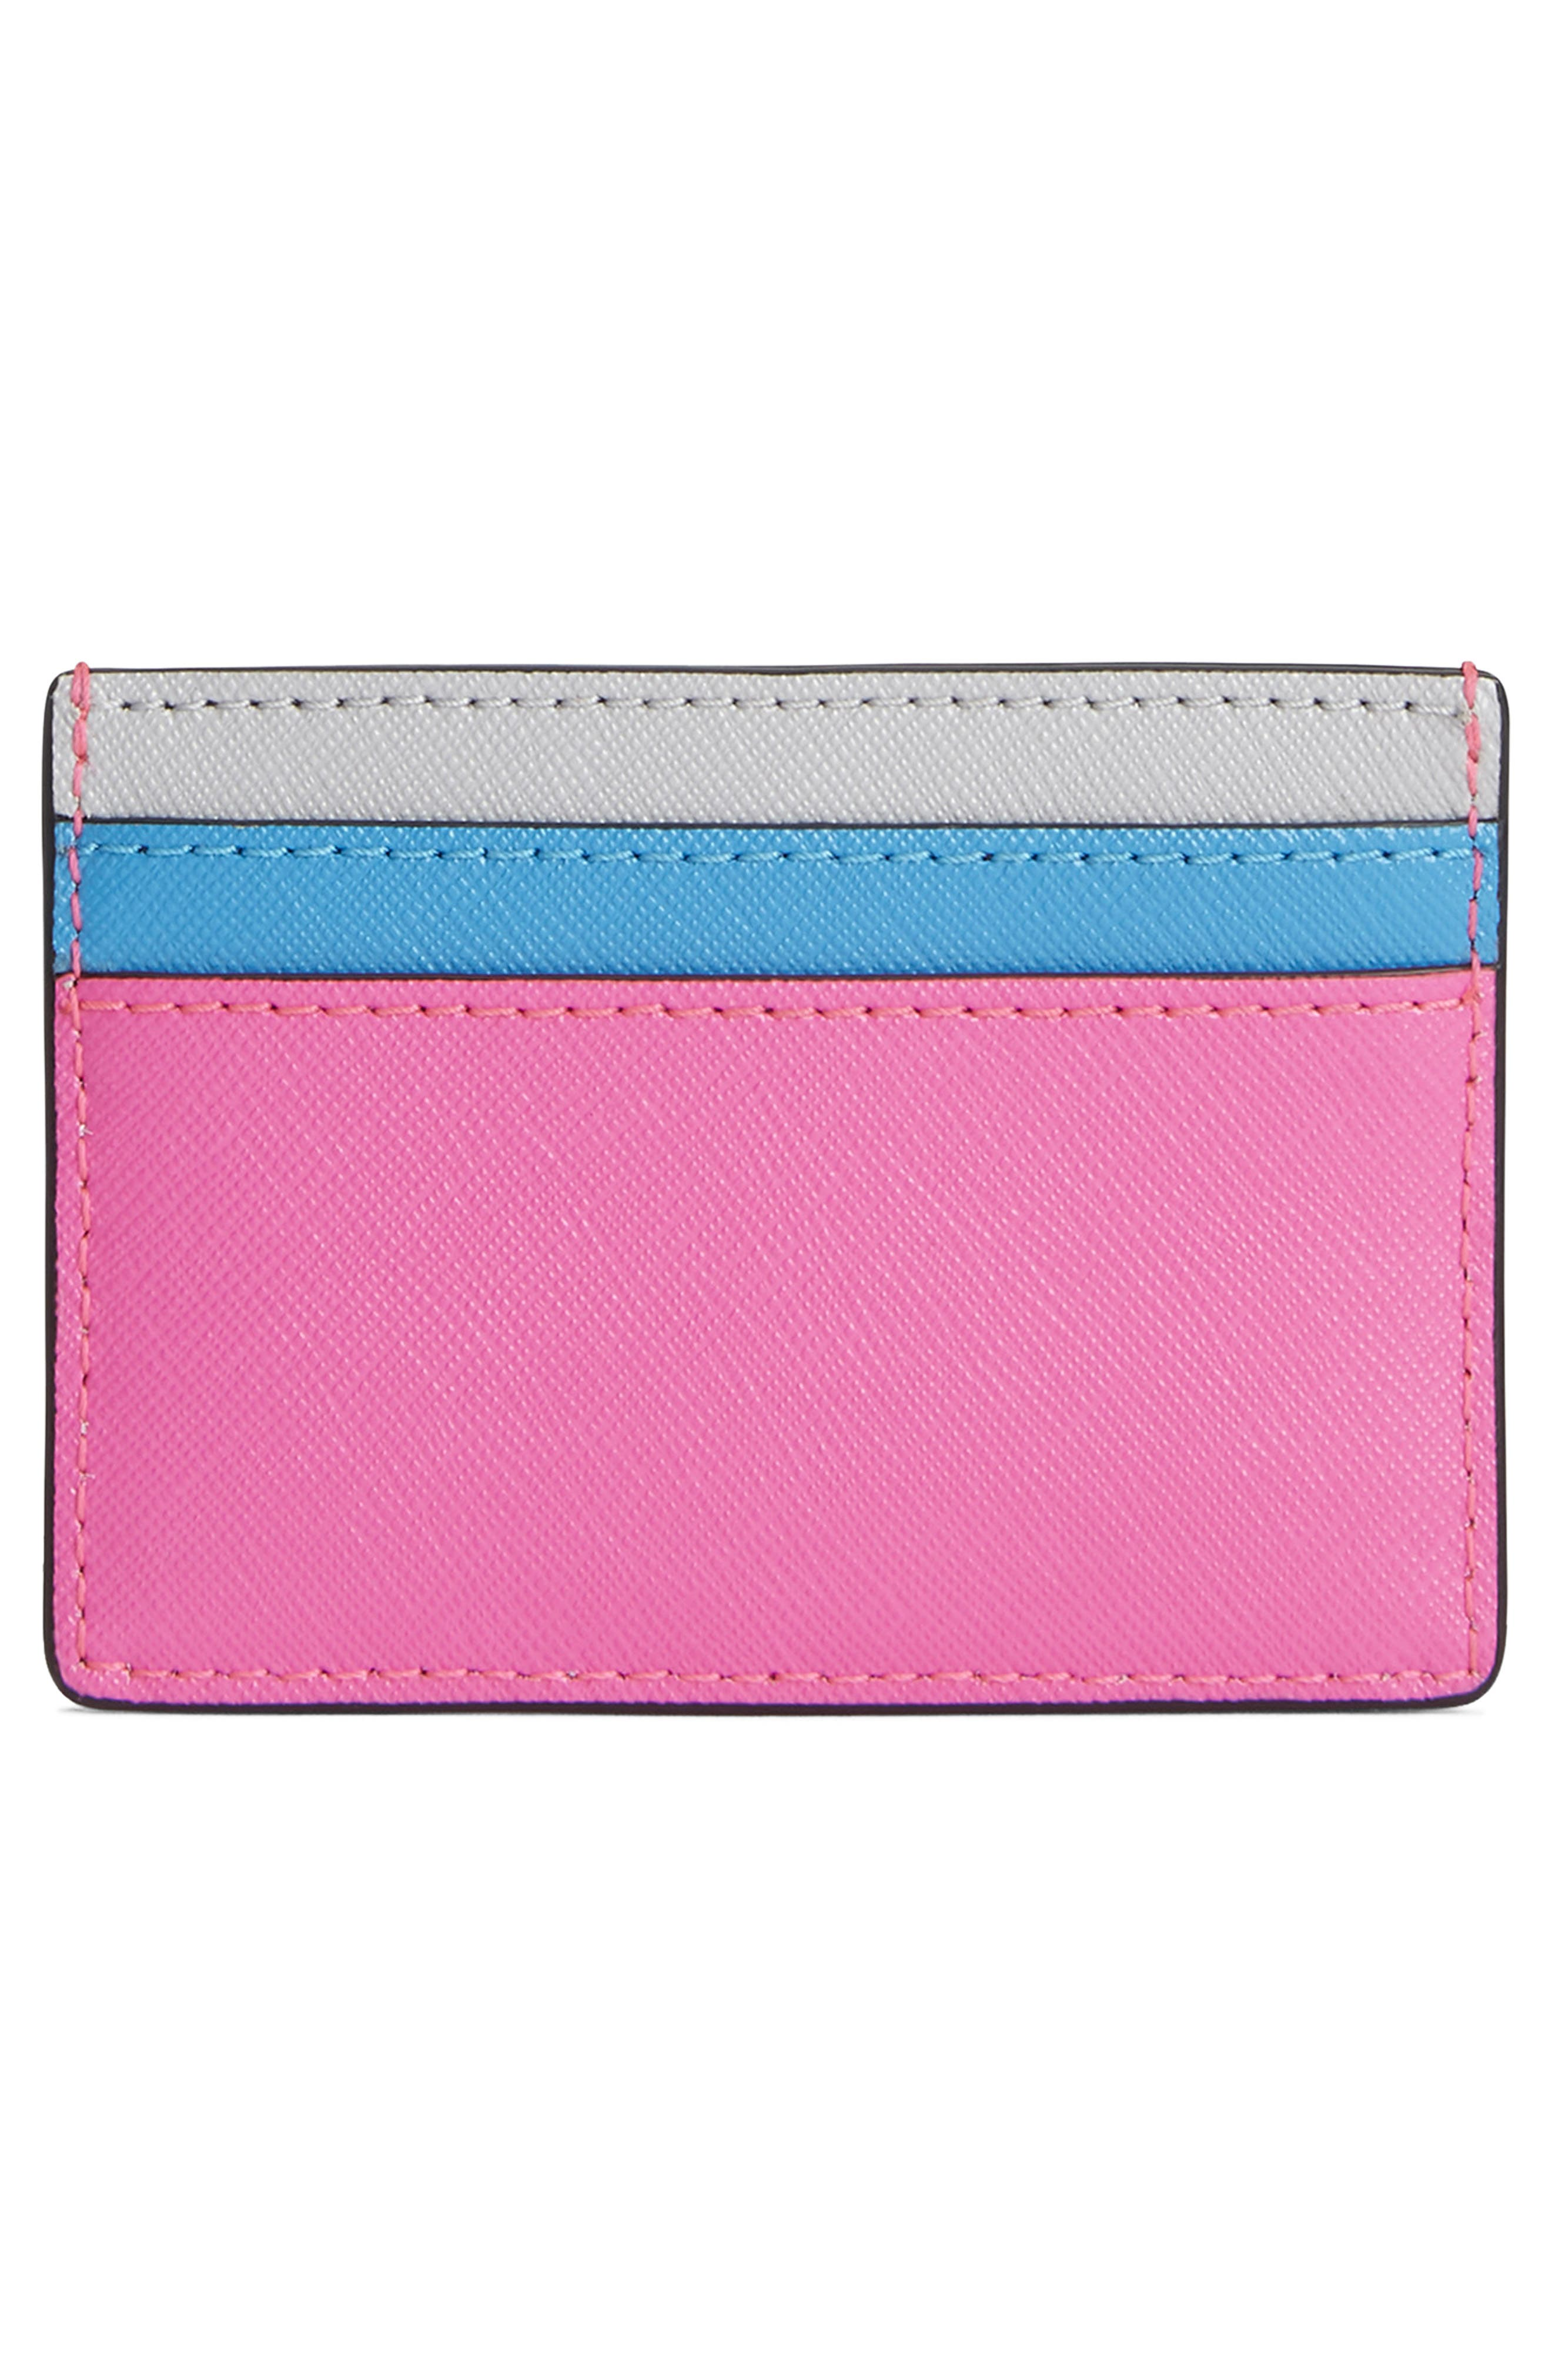 Snapshot Leather Card Case,                             Alternate thumbnail 2, color,                             BRIGHT PINK MULTI